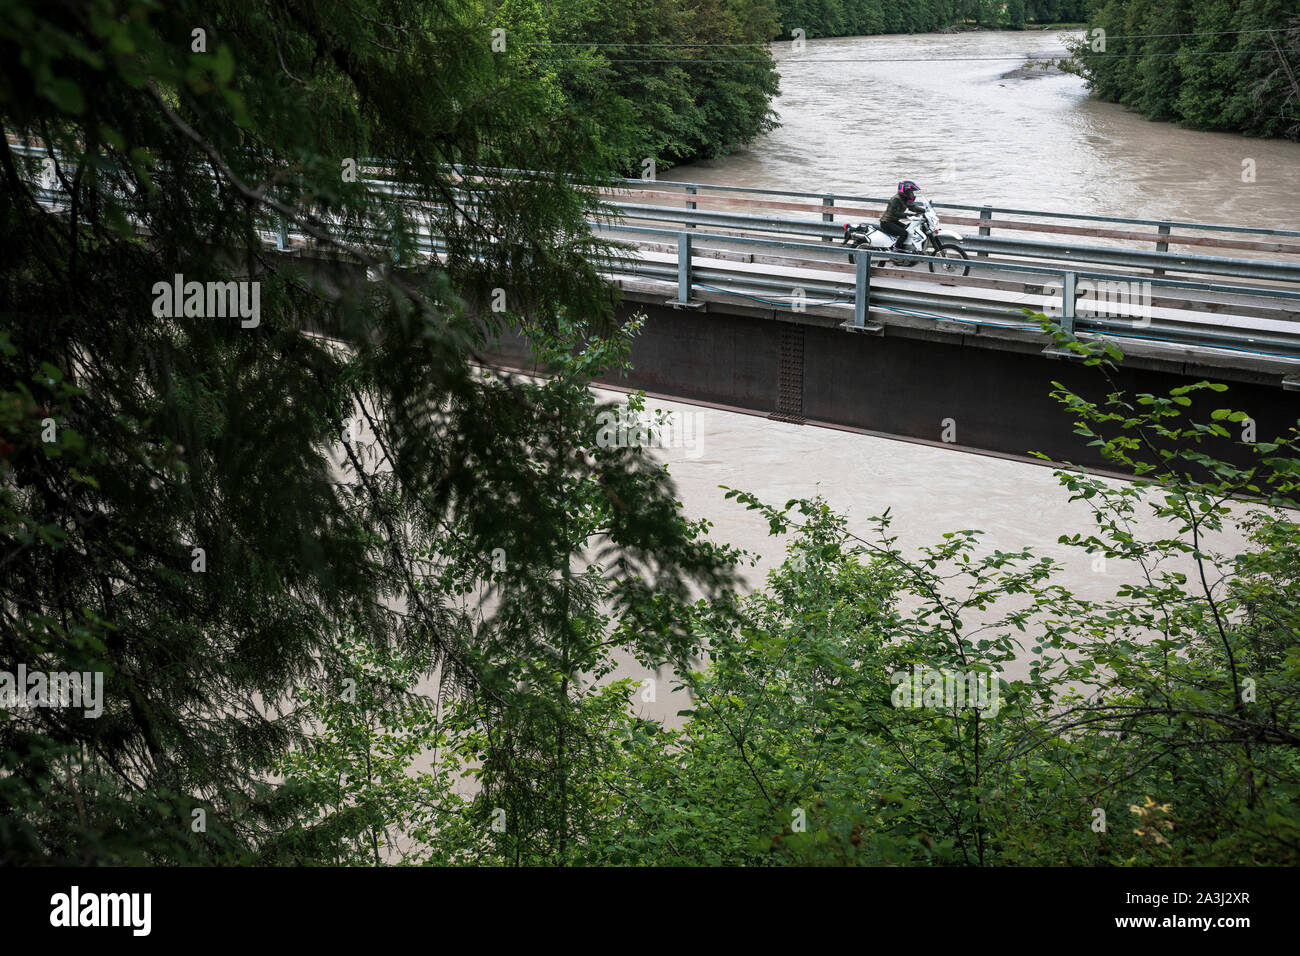 A woman rides her motorcycle across a bridge on a cloudy summer day. Stock Photo